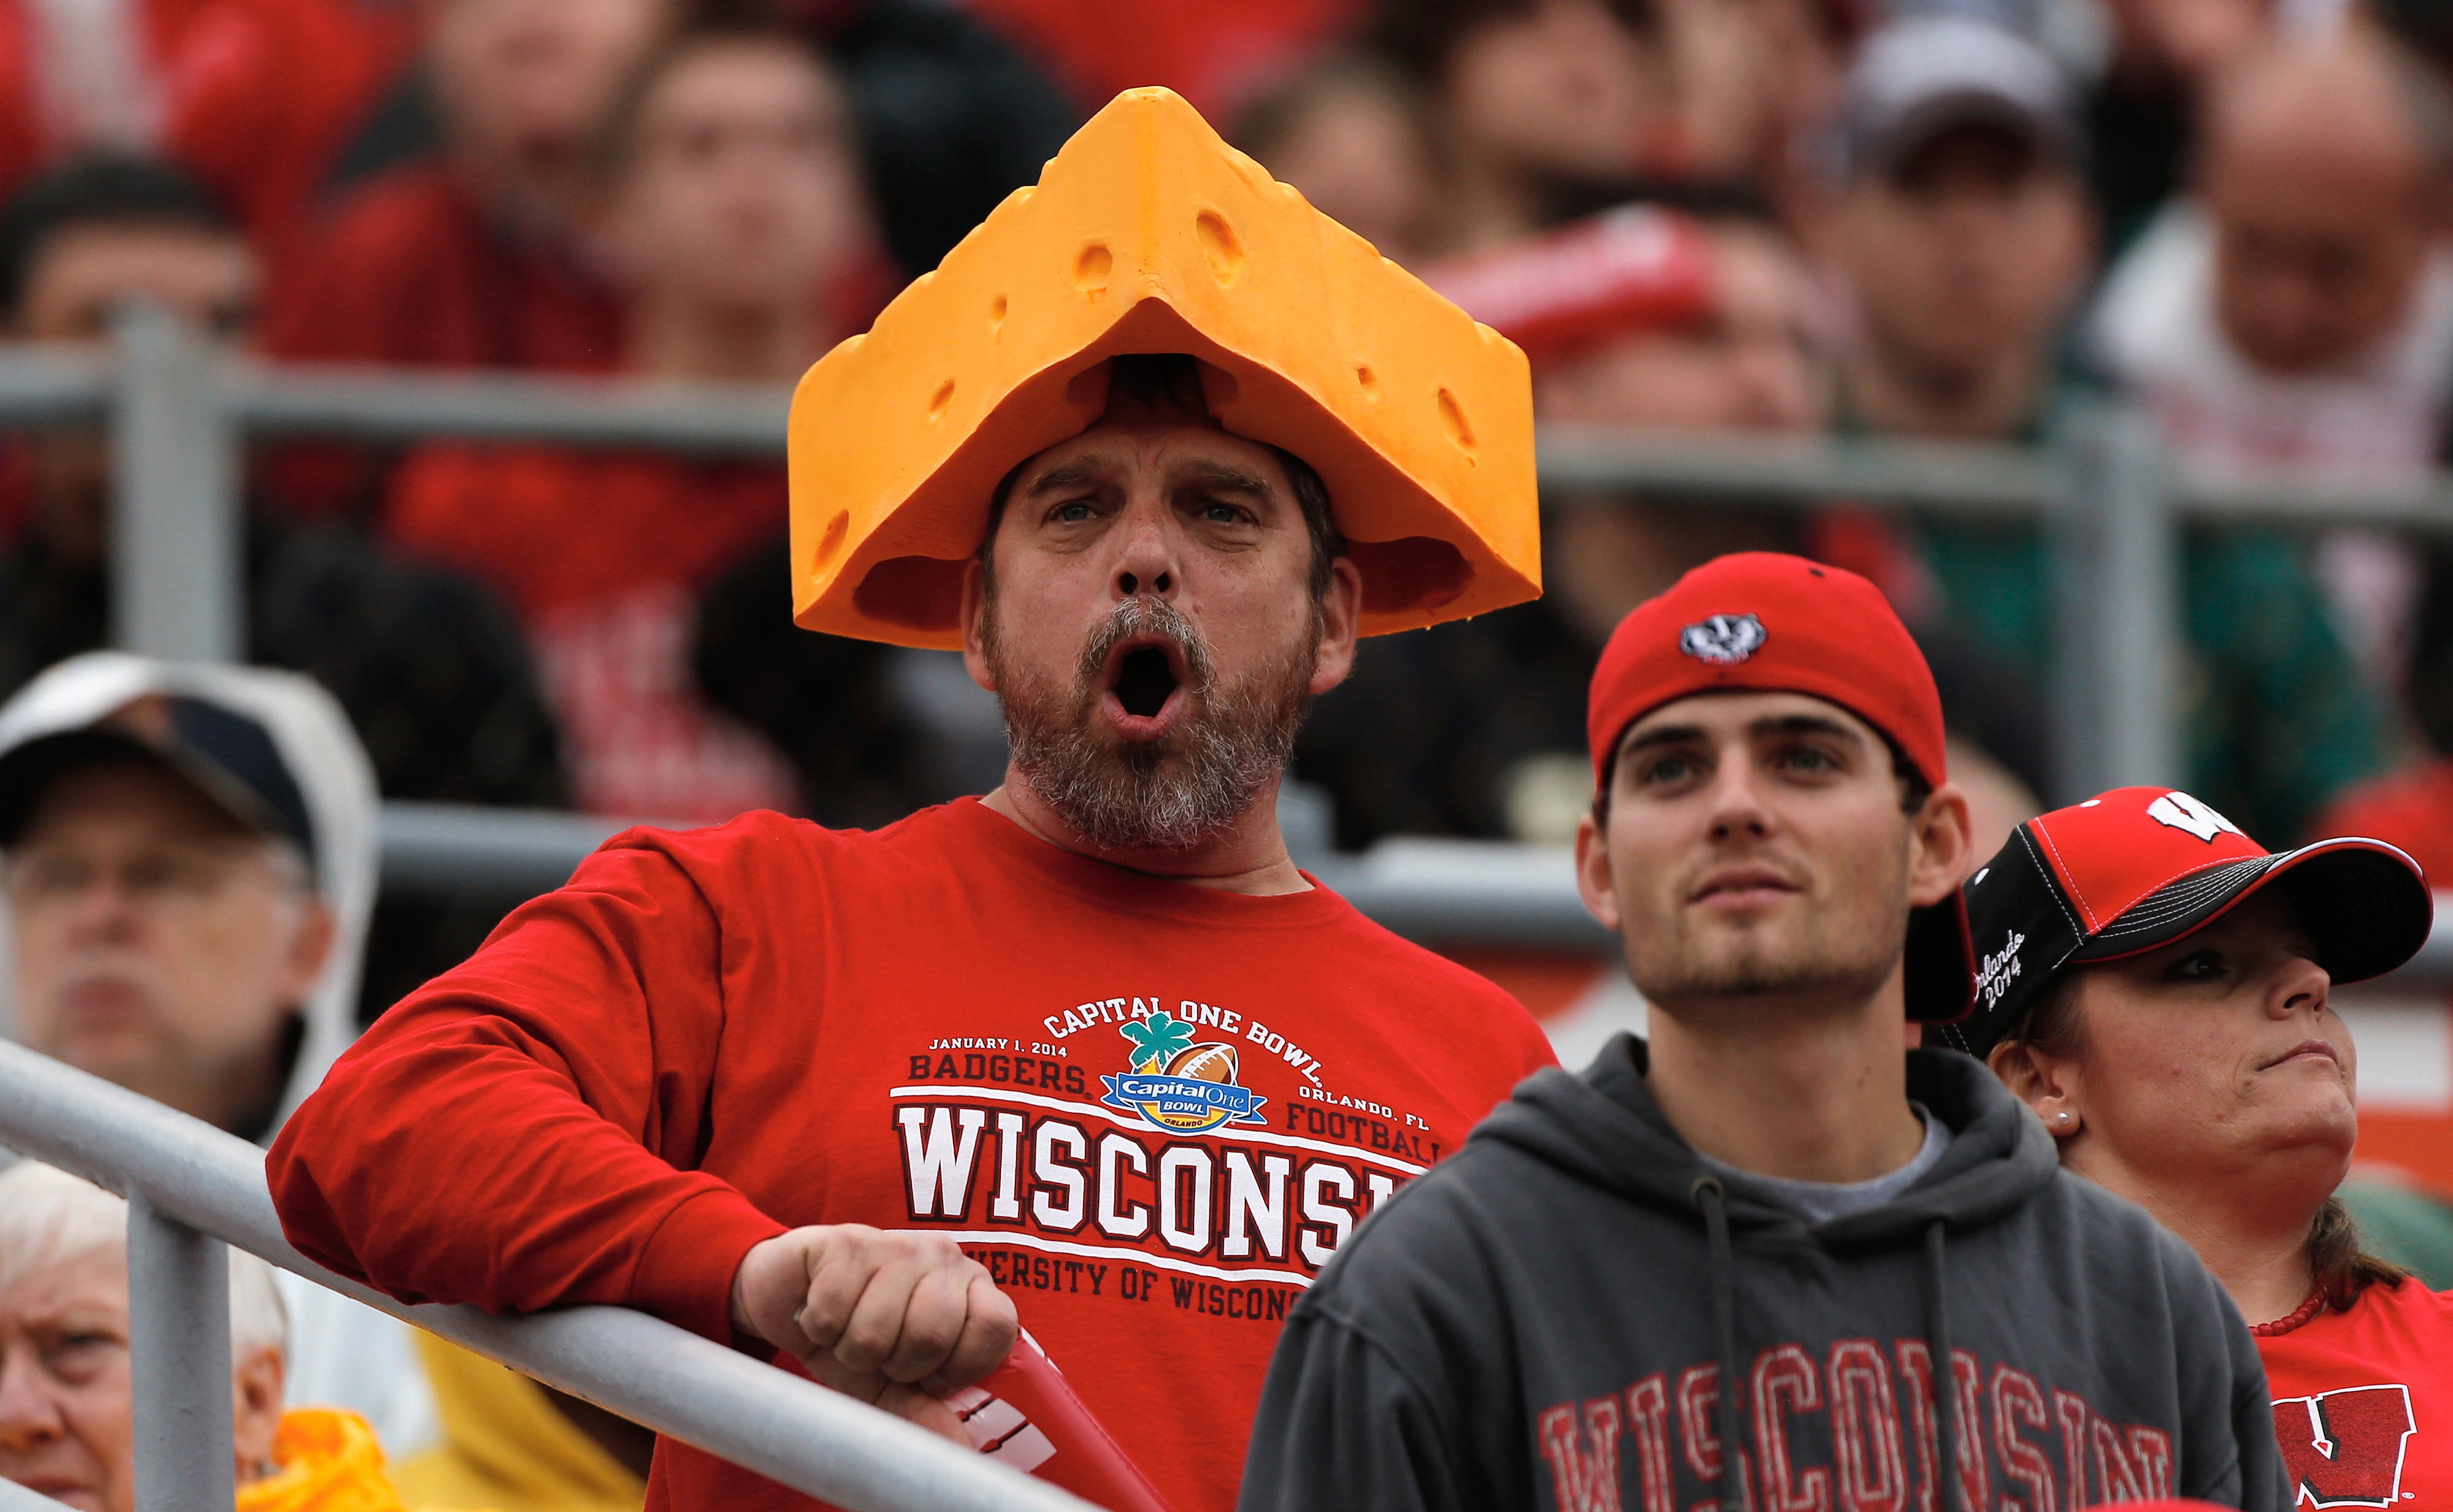 I bet you this guy is watching college football this weekend.